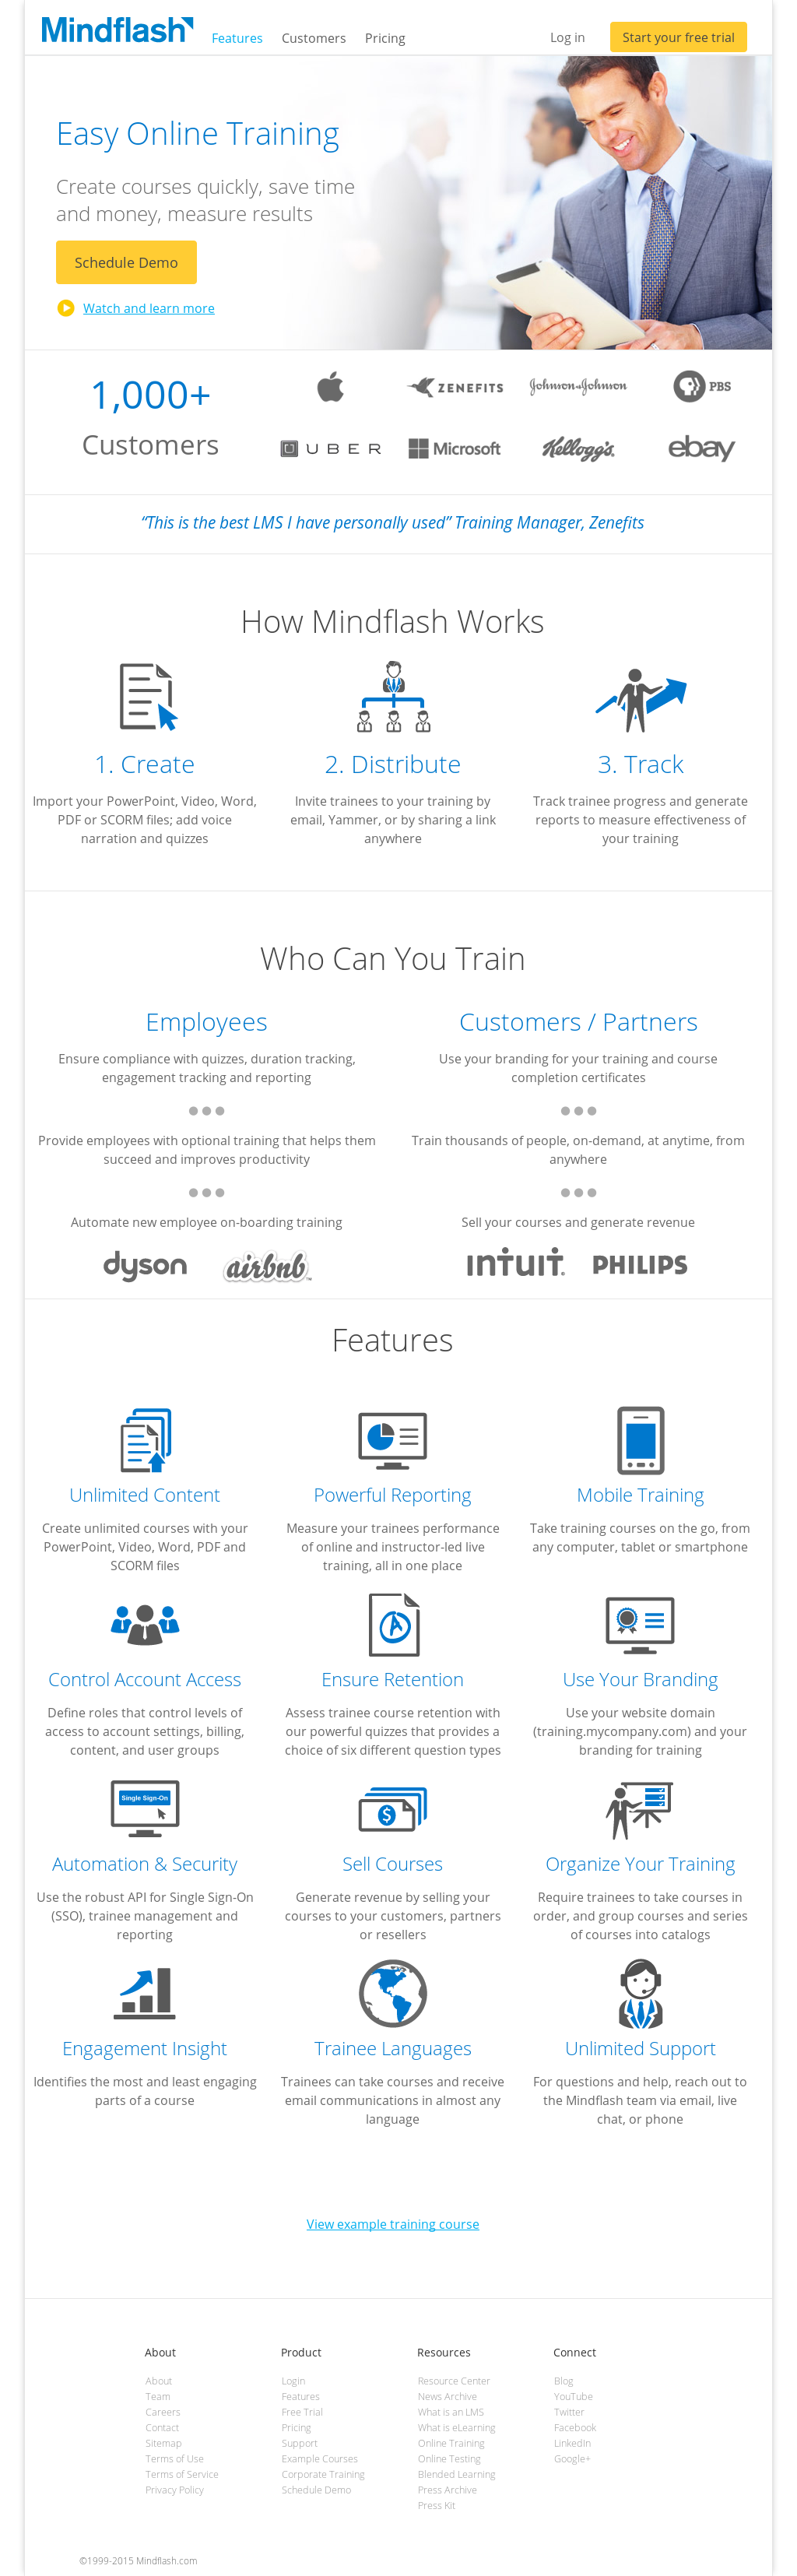 Mindflash Technologies Competitors, Revenue and Employees